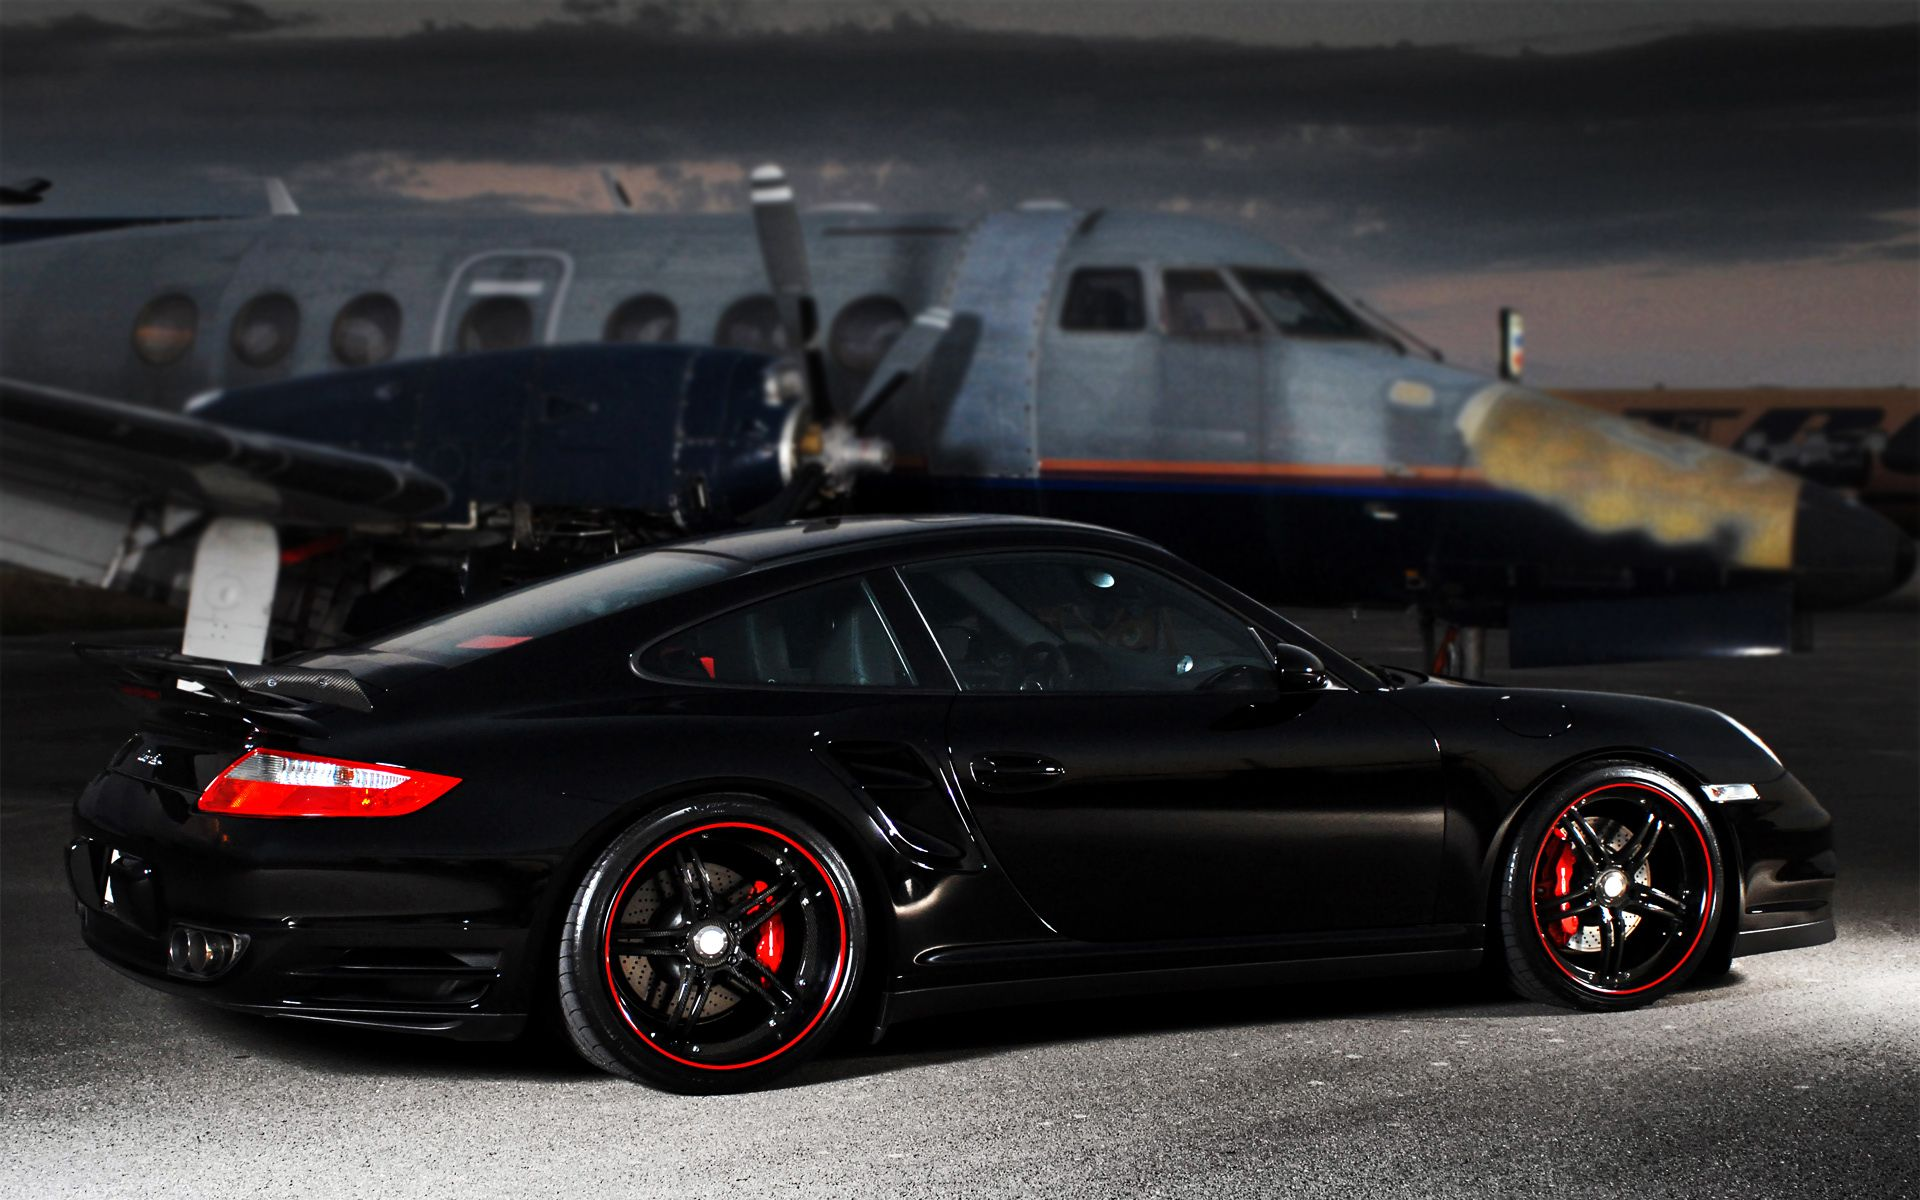 1000 images about porsche wallpapers on pinterest cars used porsche 911 and porsche carrera - Porsche 911 Turbo Wallpaper Iphone